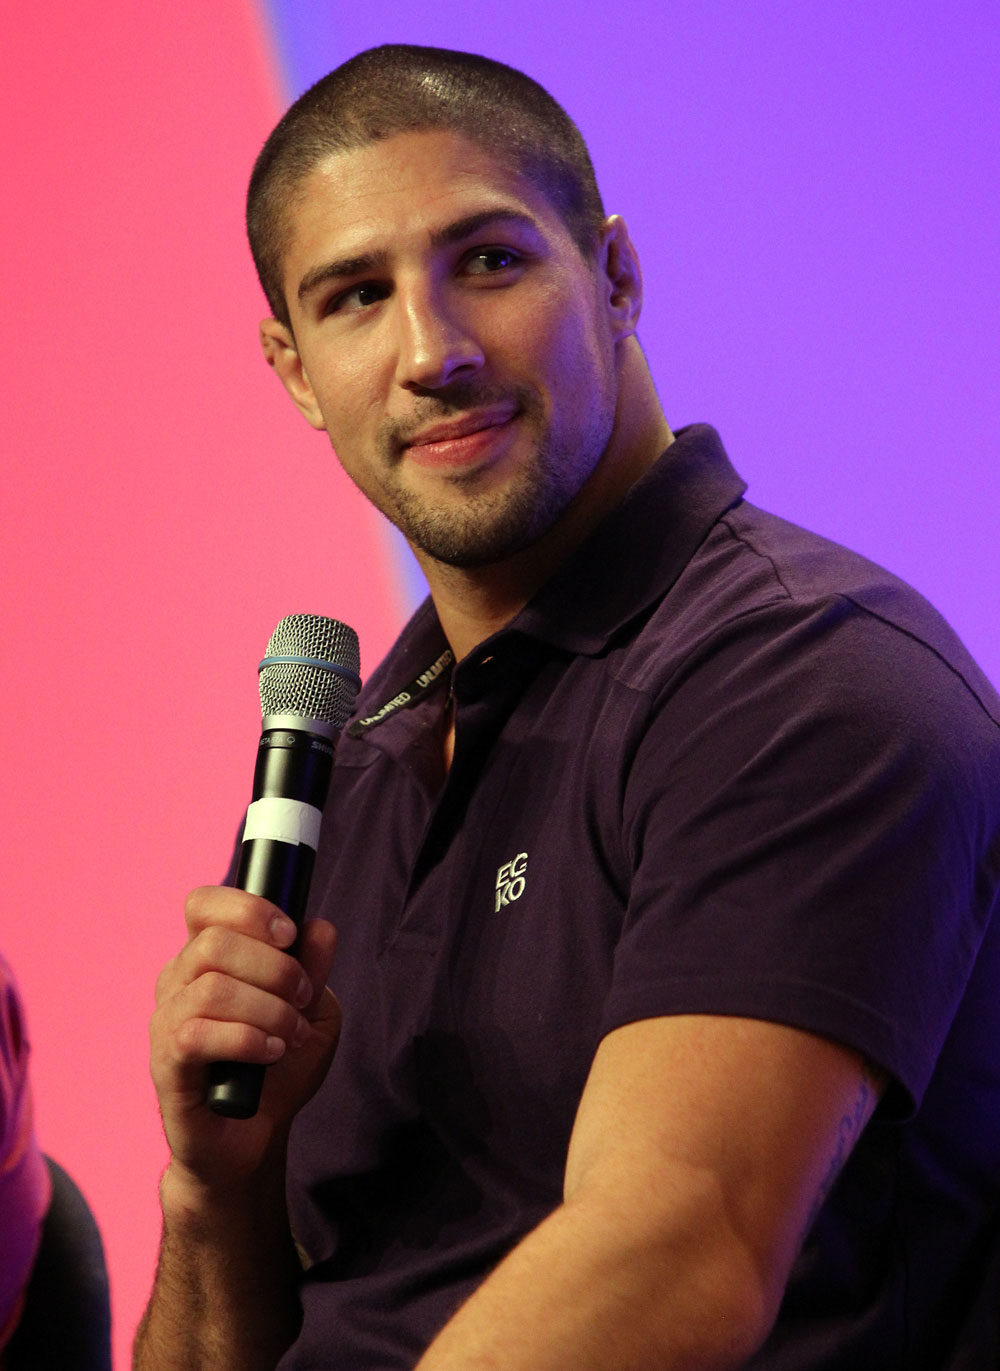 UFC fighter Brendan Schaub attends a Q&amp;A session with former cast members of The Ultimate Fighter on the main stage at the UFC Fan Expo